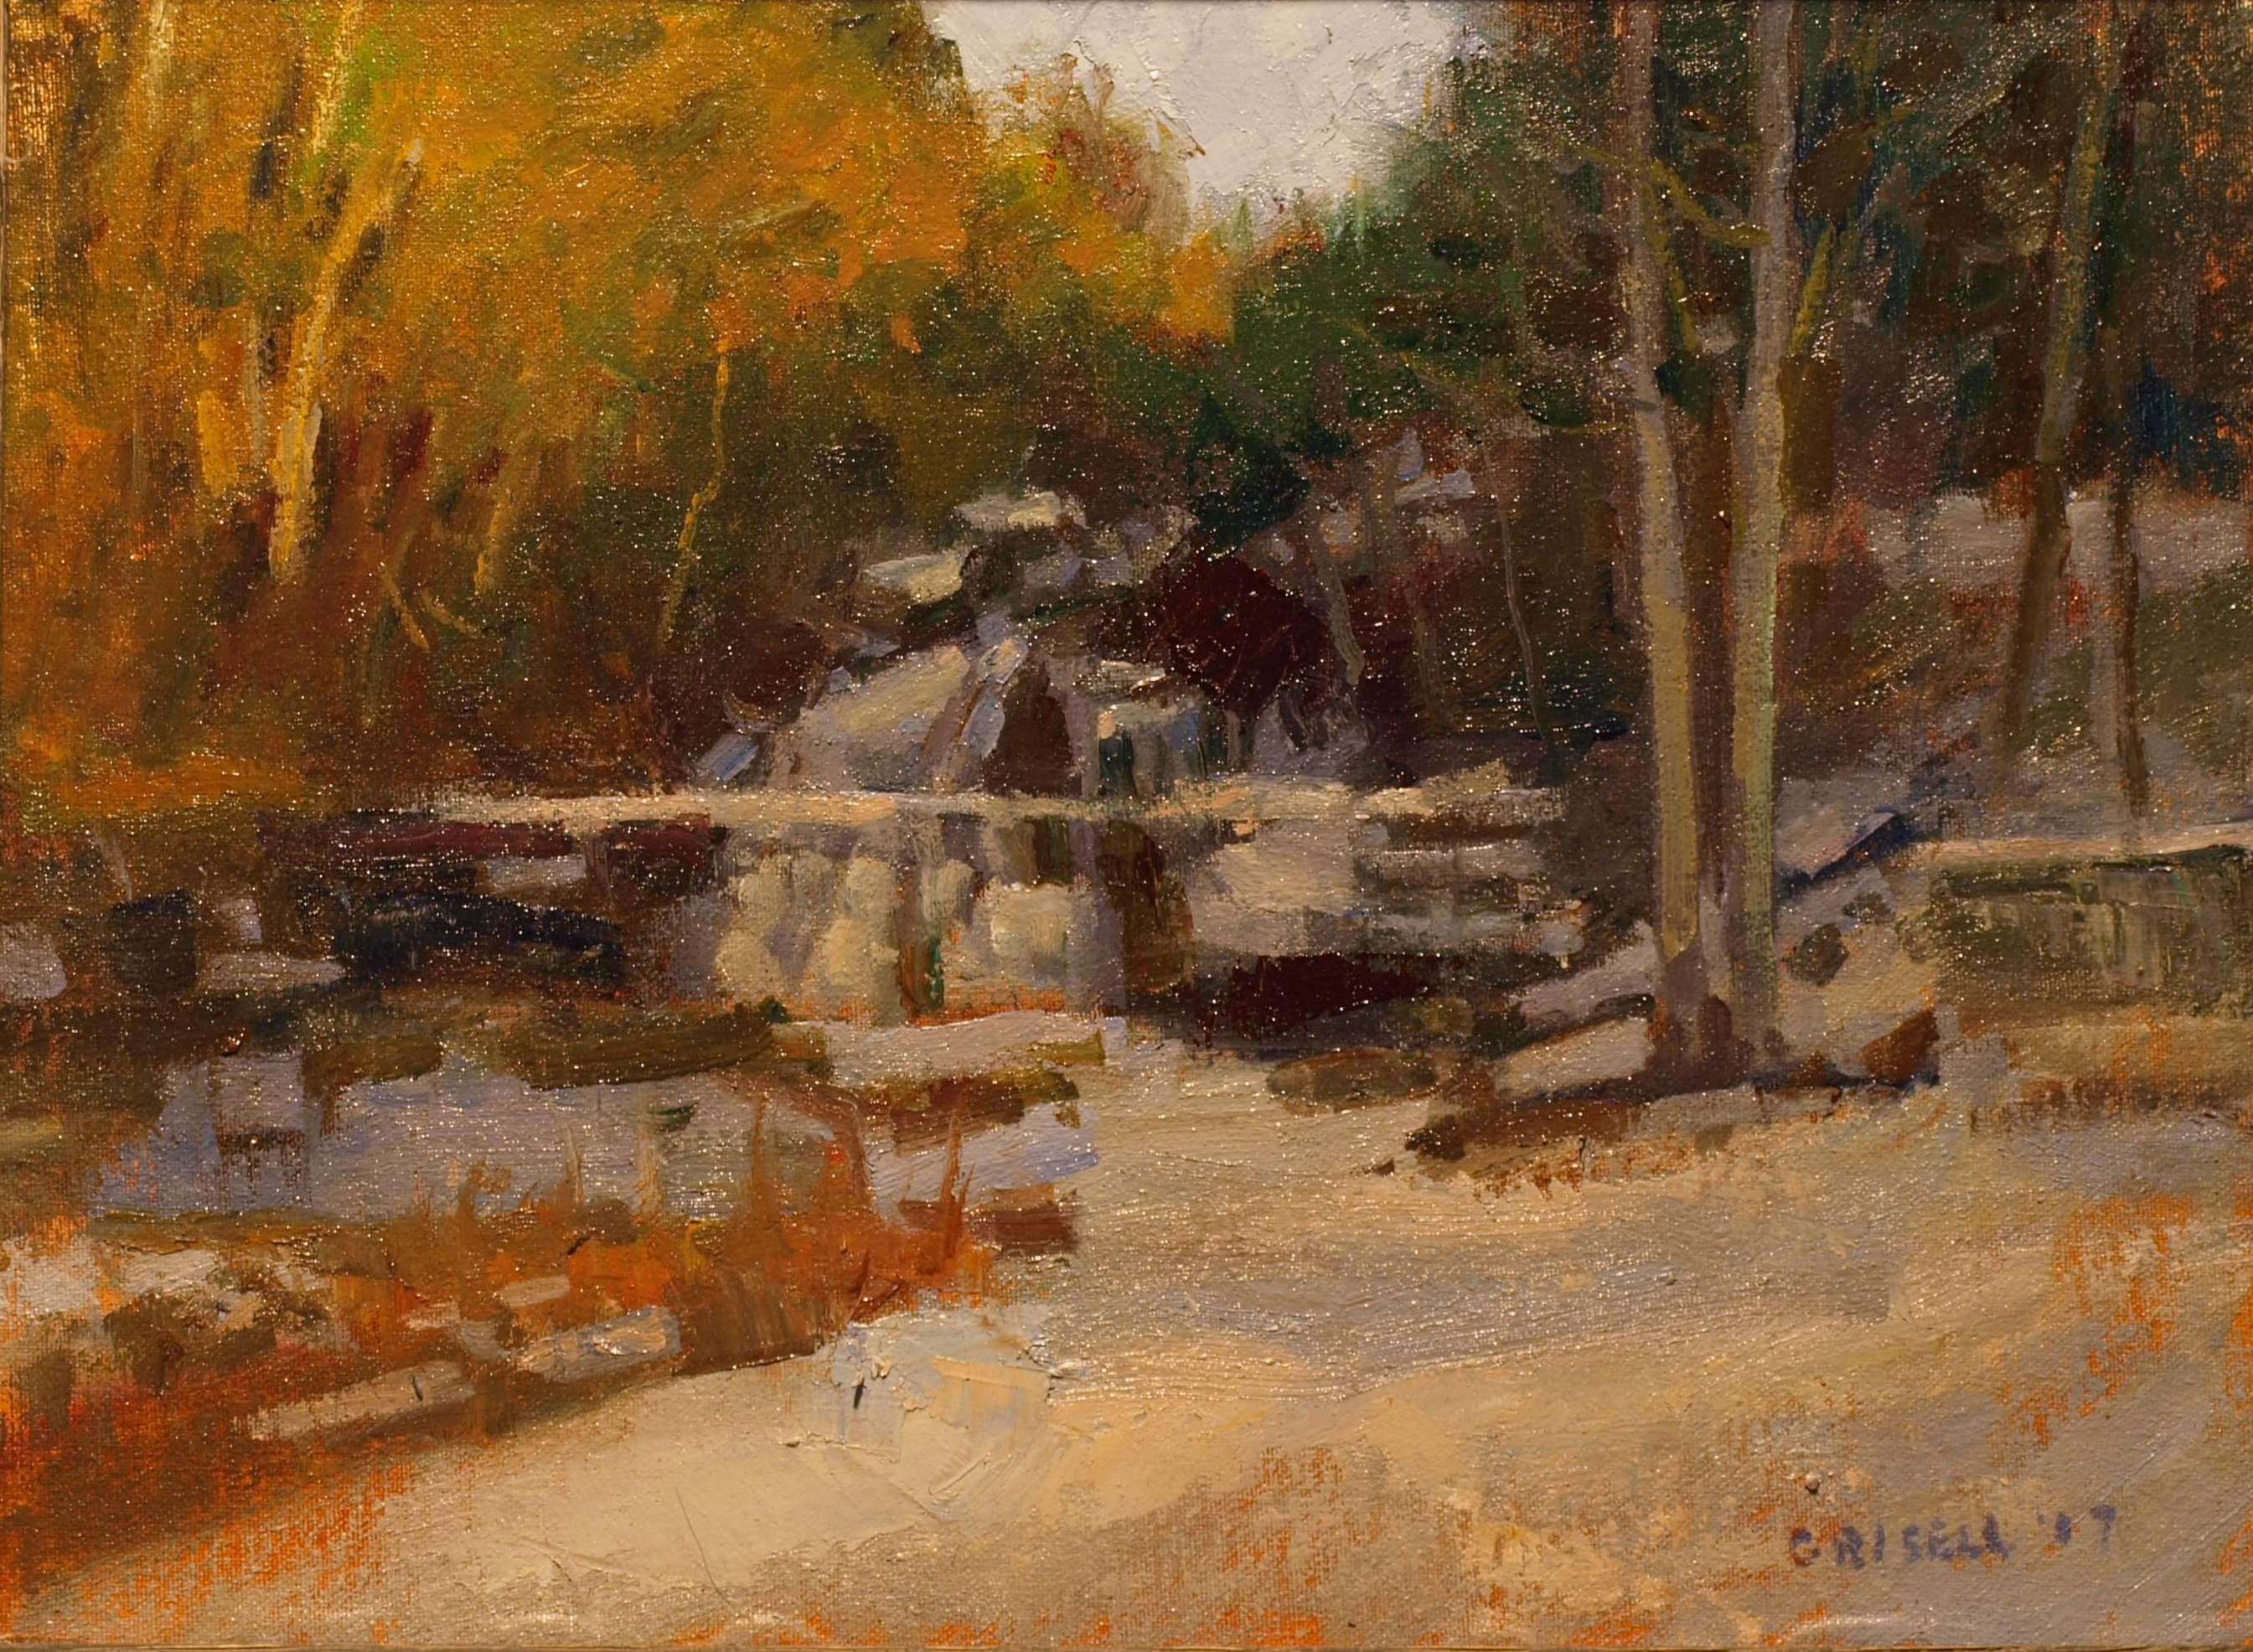 Kent Falls in Winter, Oil on Canvas on Panel, 12 x 18 Inches, by Susan Grisell, $300